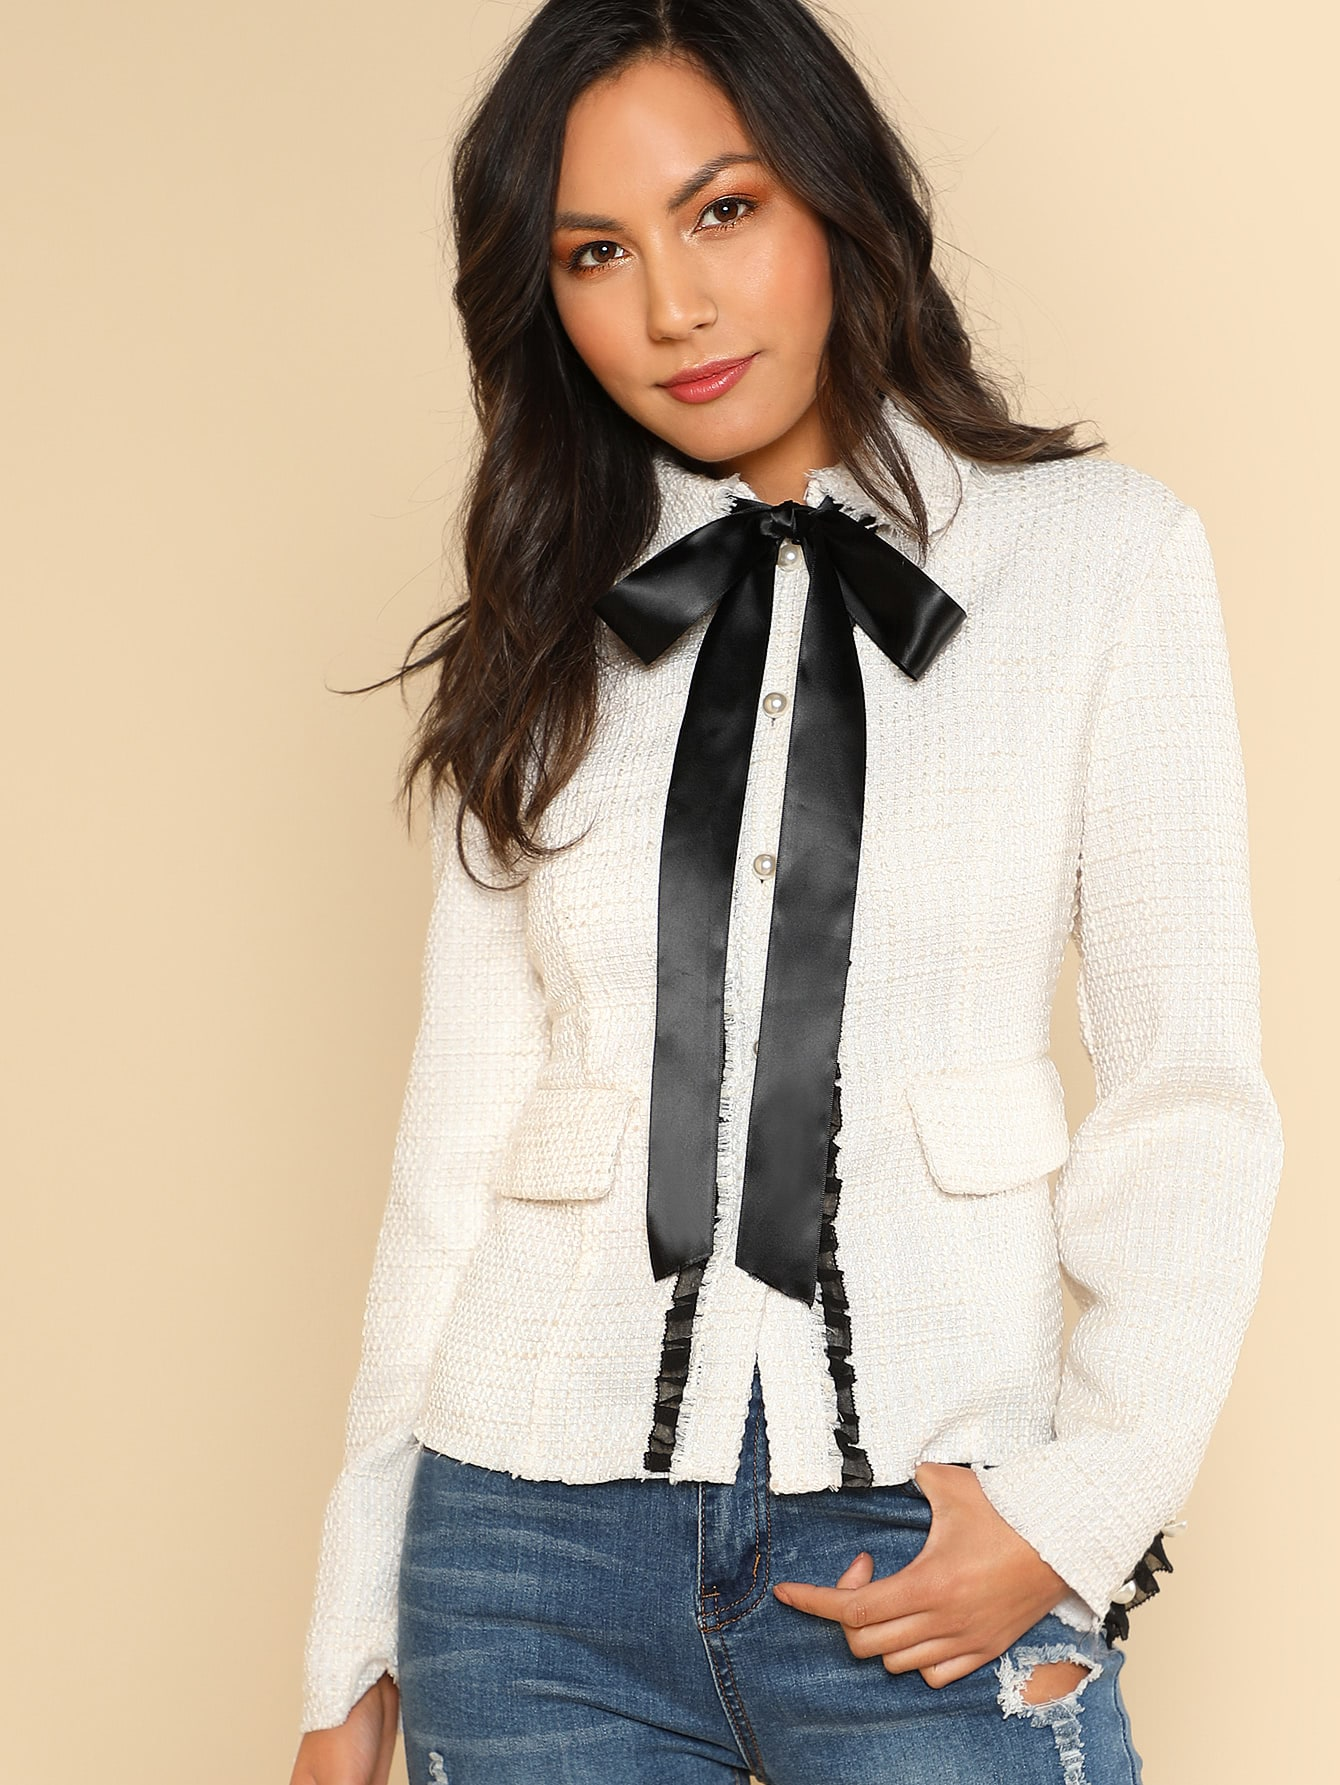 Contrast Bow Tied Neck Fitted Jacket contrast cuff fitted blazer